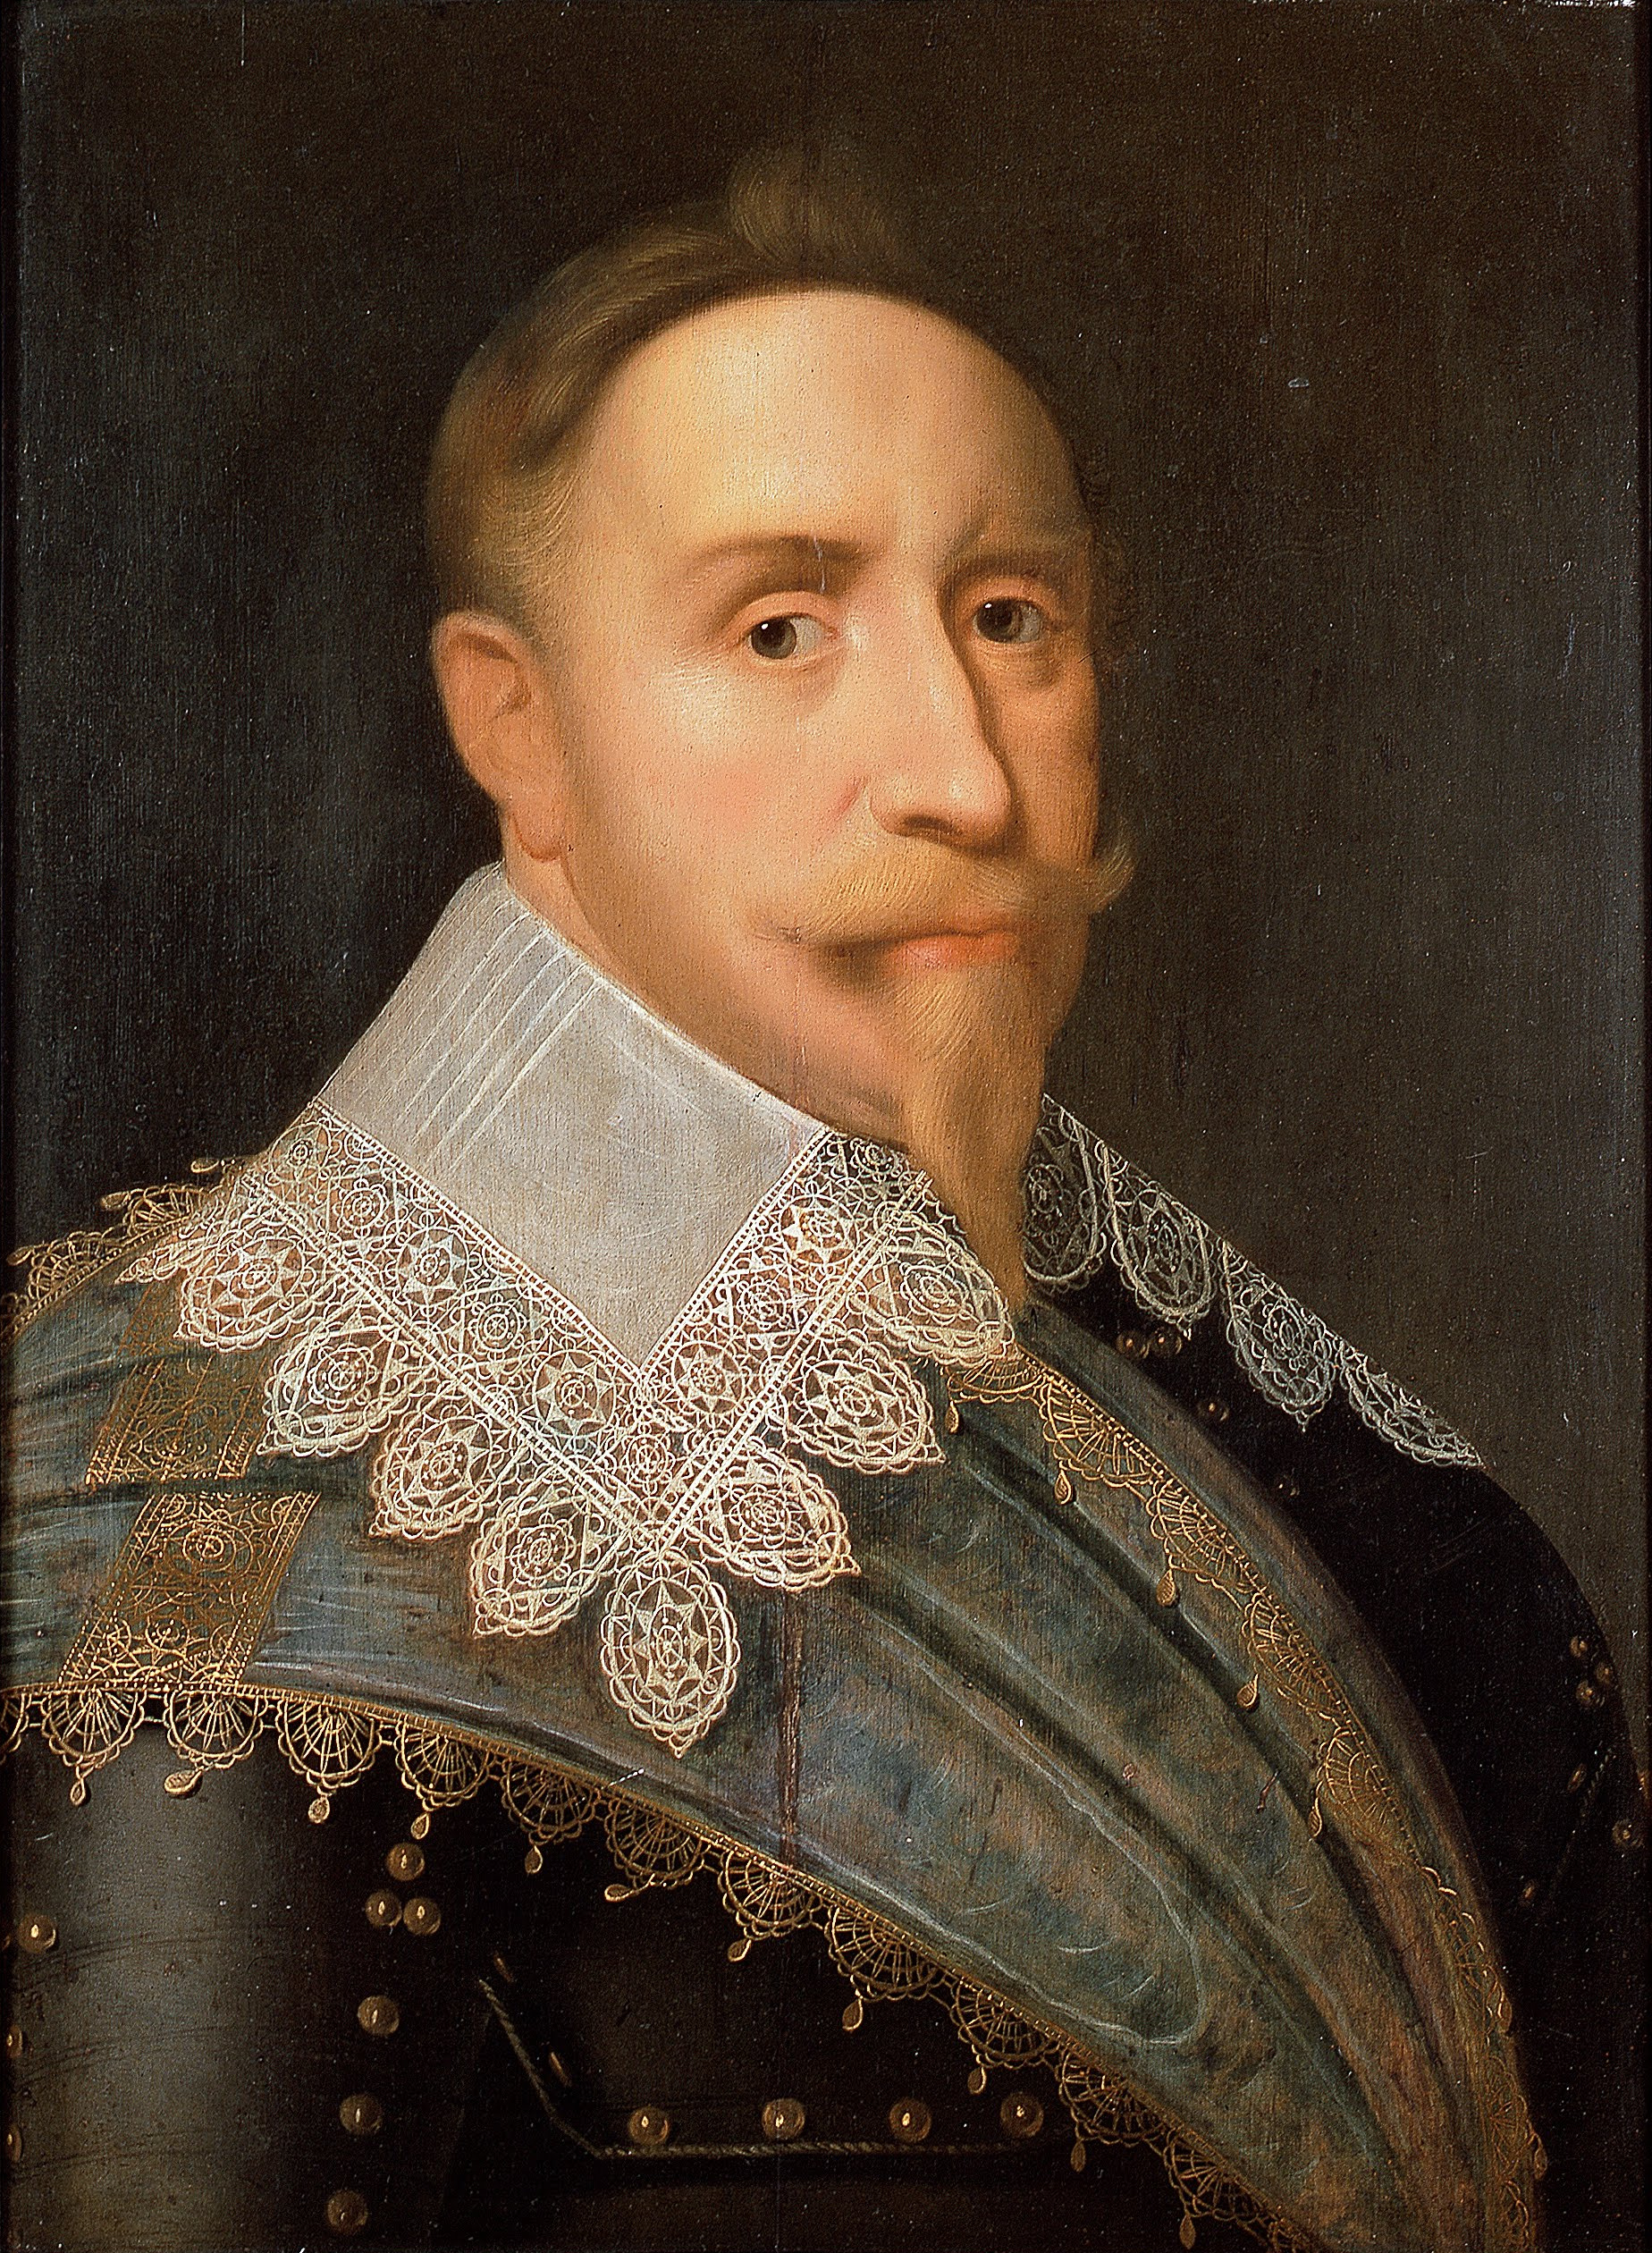 https://upload.wikimedia.org/wikipedia/commons/2/22/Attributed_to_Jacob_Hoefnagel_-_Gustavus_Adolphus%2C_King_of_Sweden_1611-1632_-_Google_Art_Project.jpg